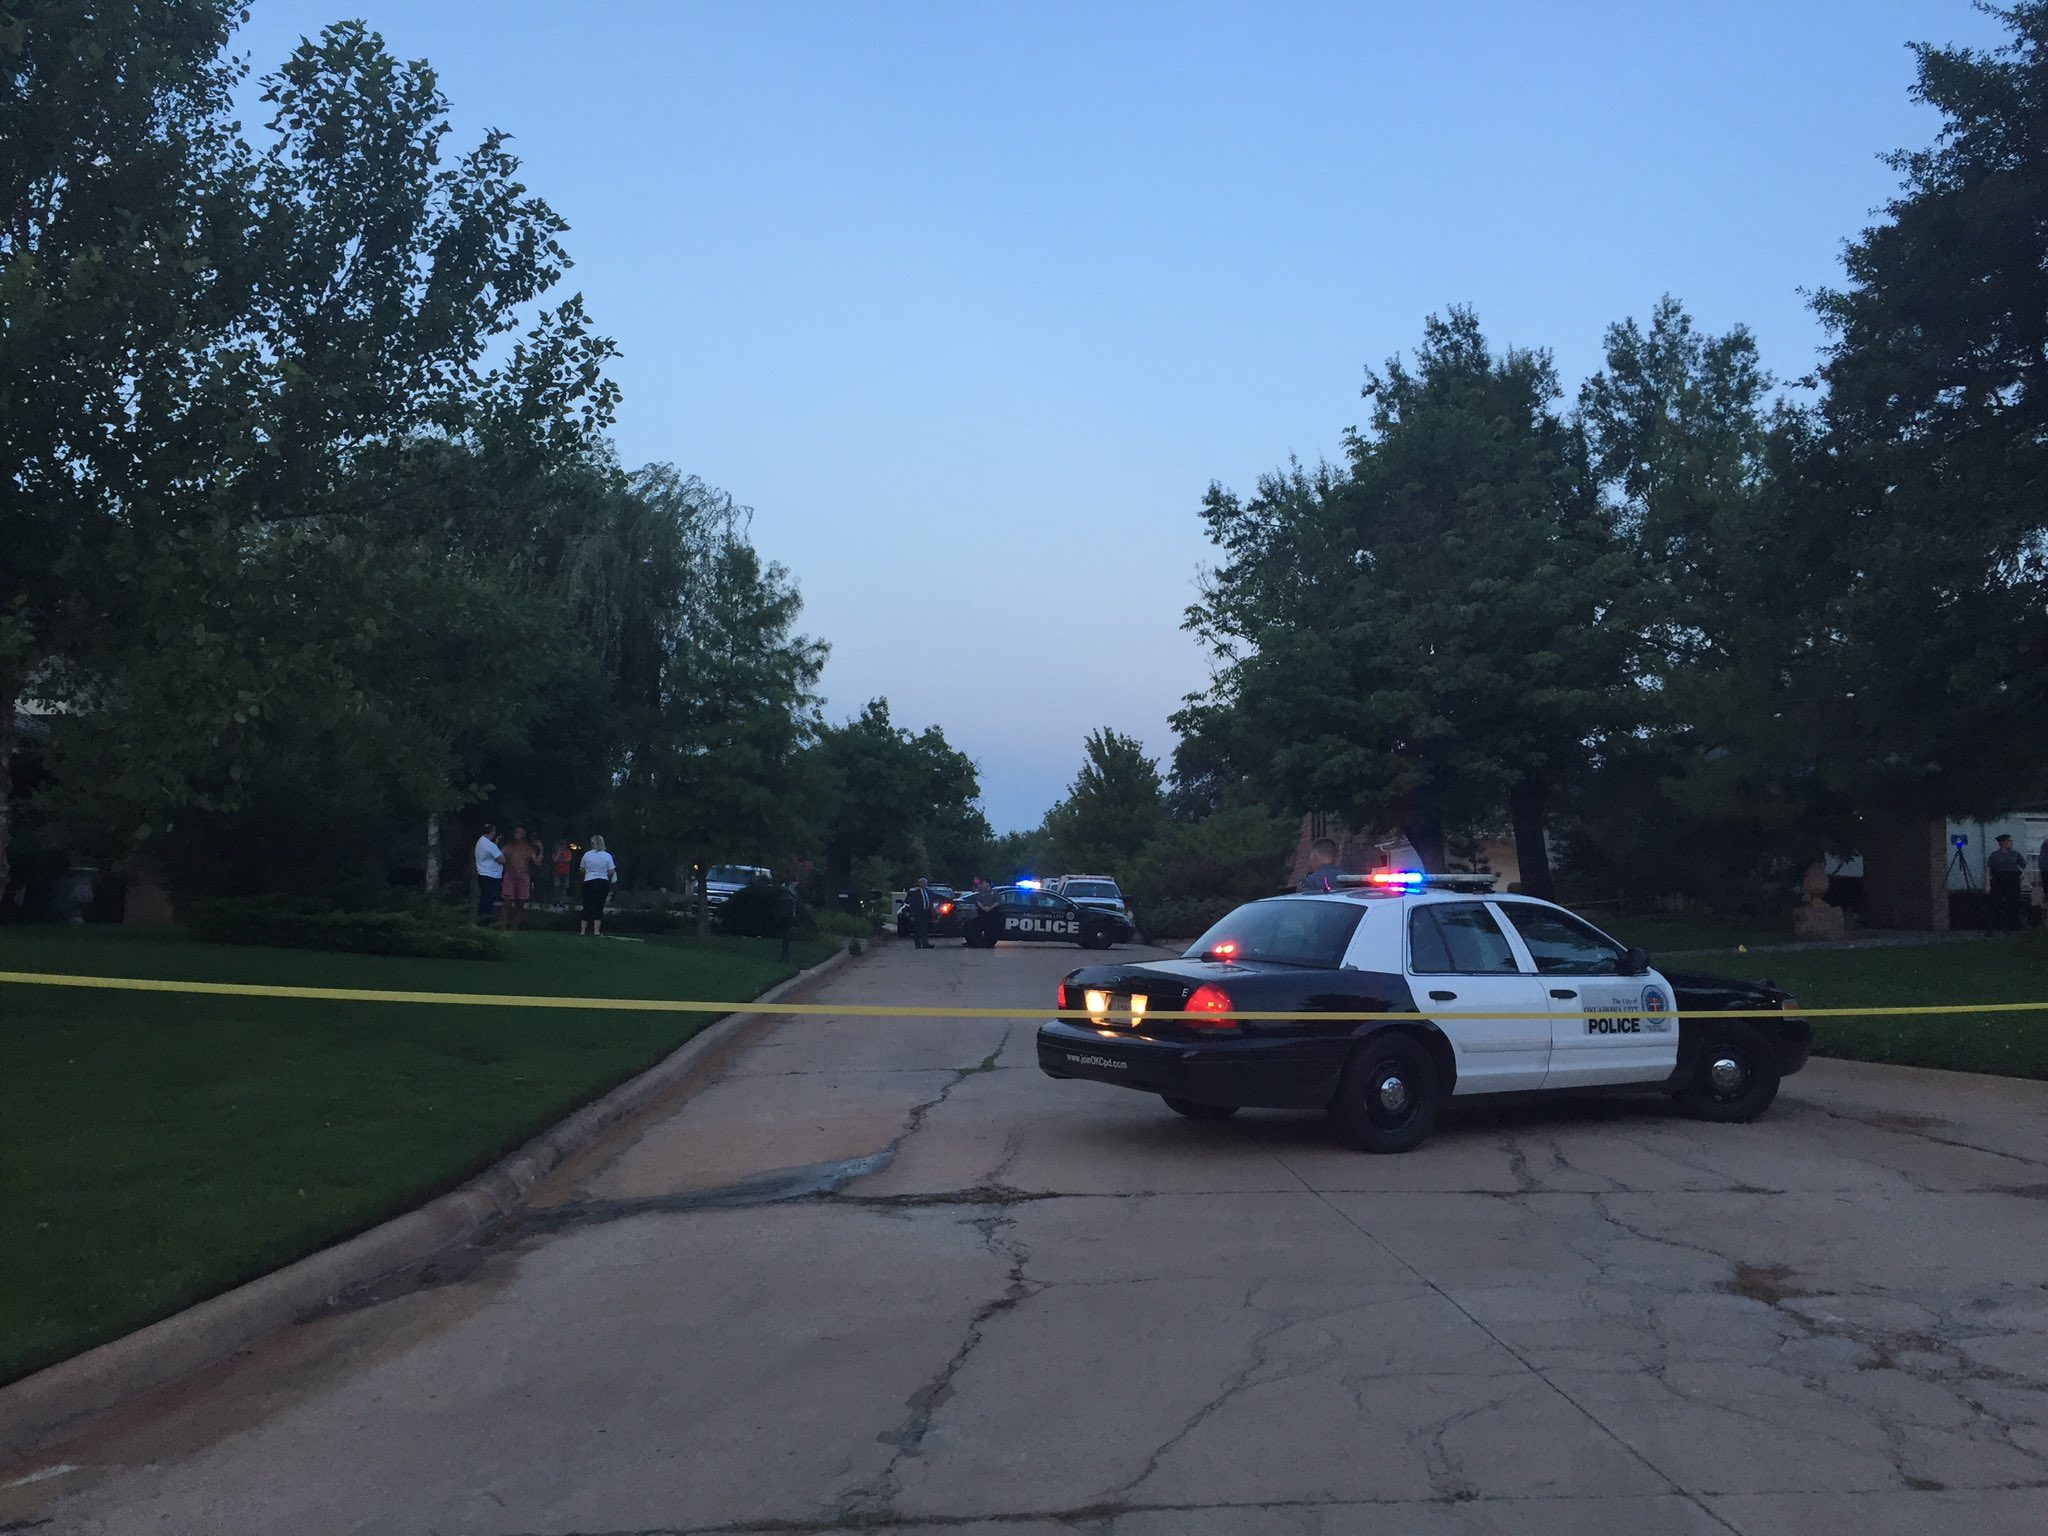 Oklahoma City Police confirm this is a homicide with one victim. But would not say much beyond that. (Jordann Lucero / KOKH)